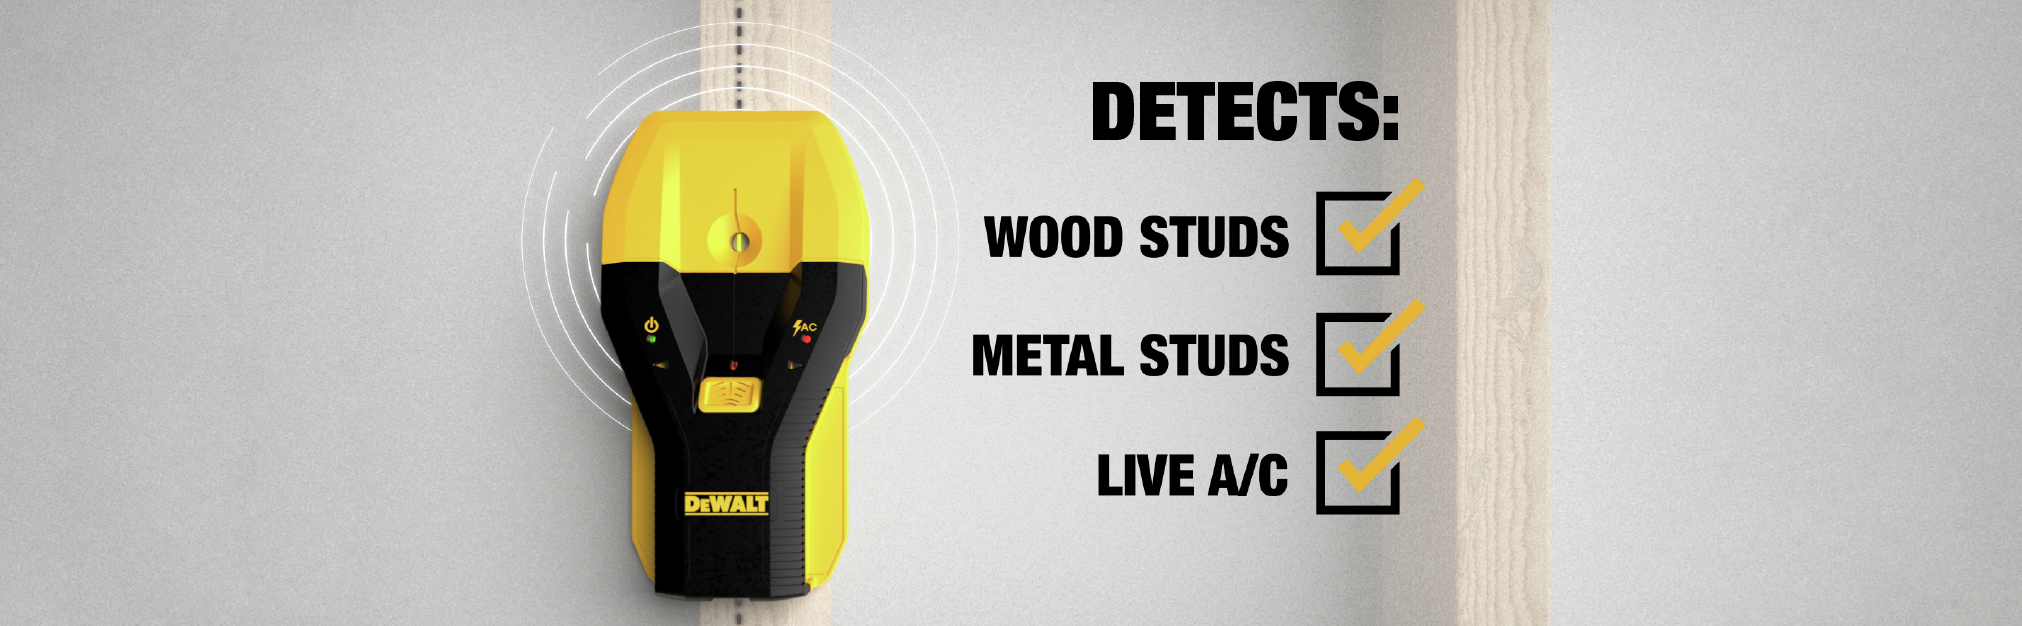 Detects Wood Studs, Metal Studs, and Live A/C